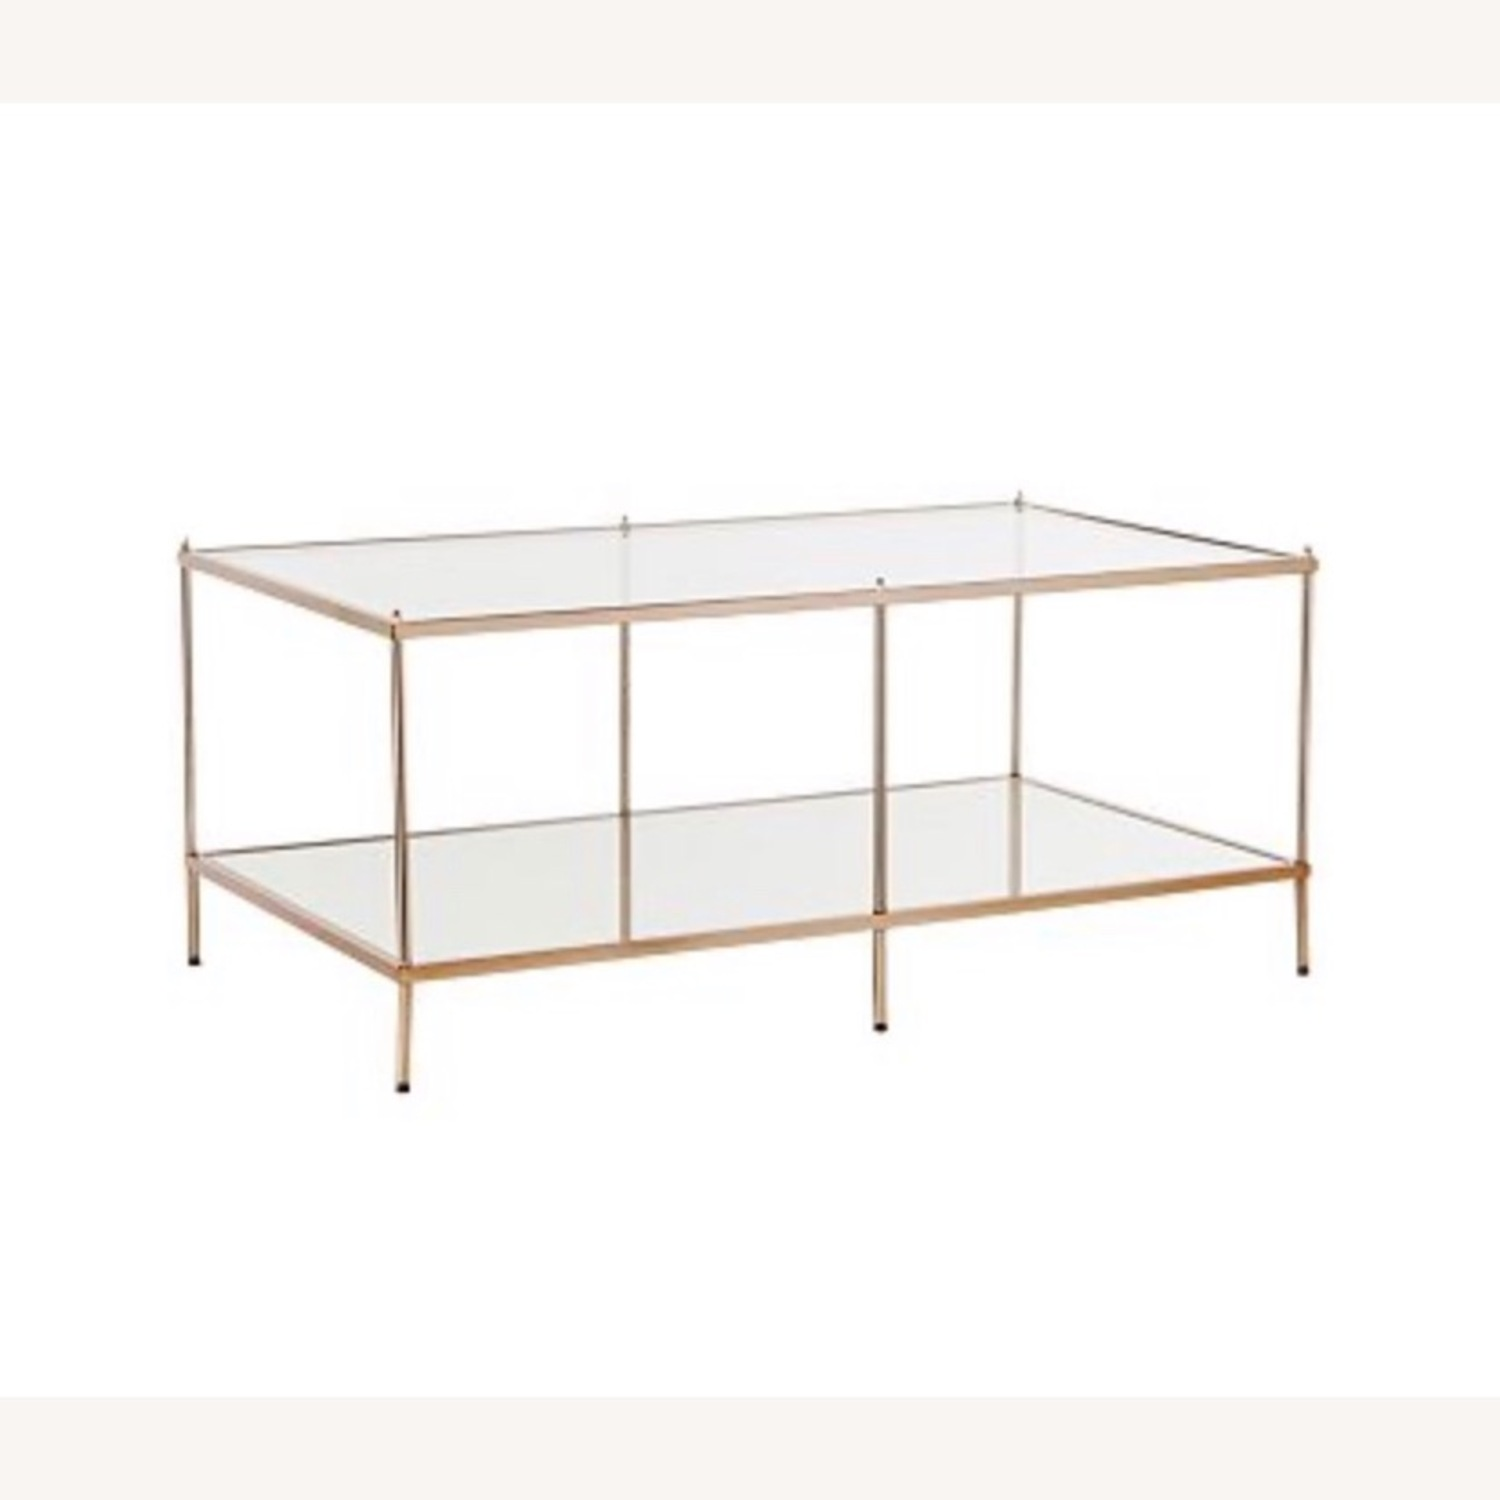 Macy's Glass Coffee Table with Metal Frame - image-3